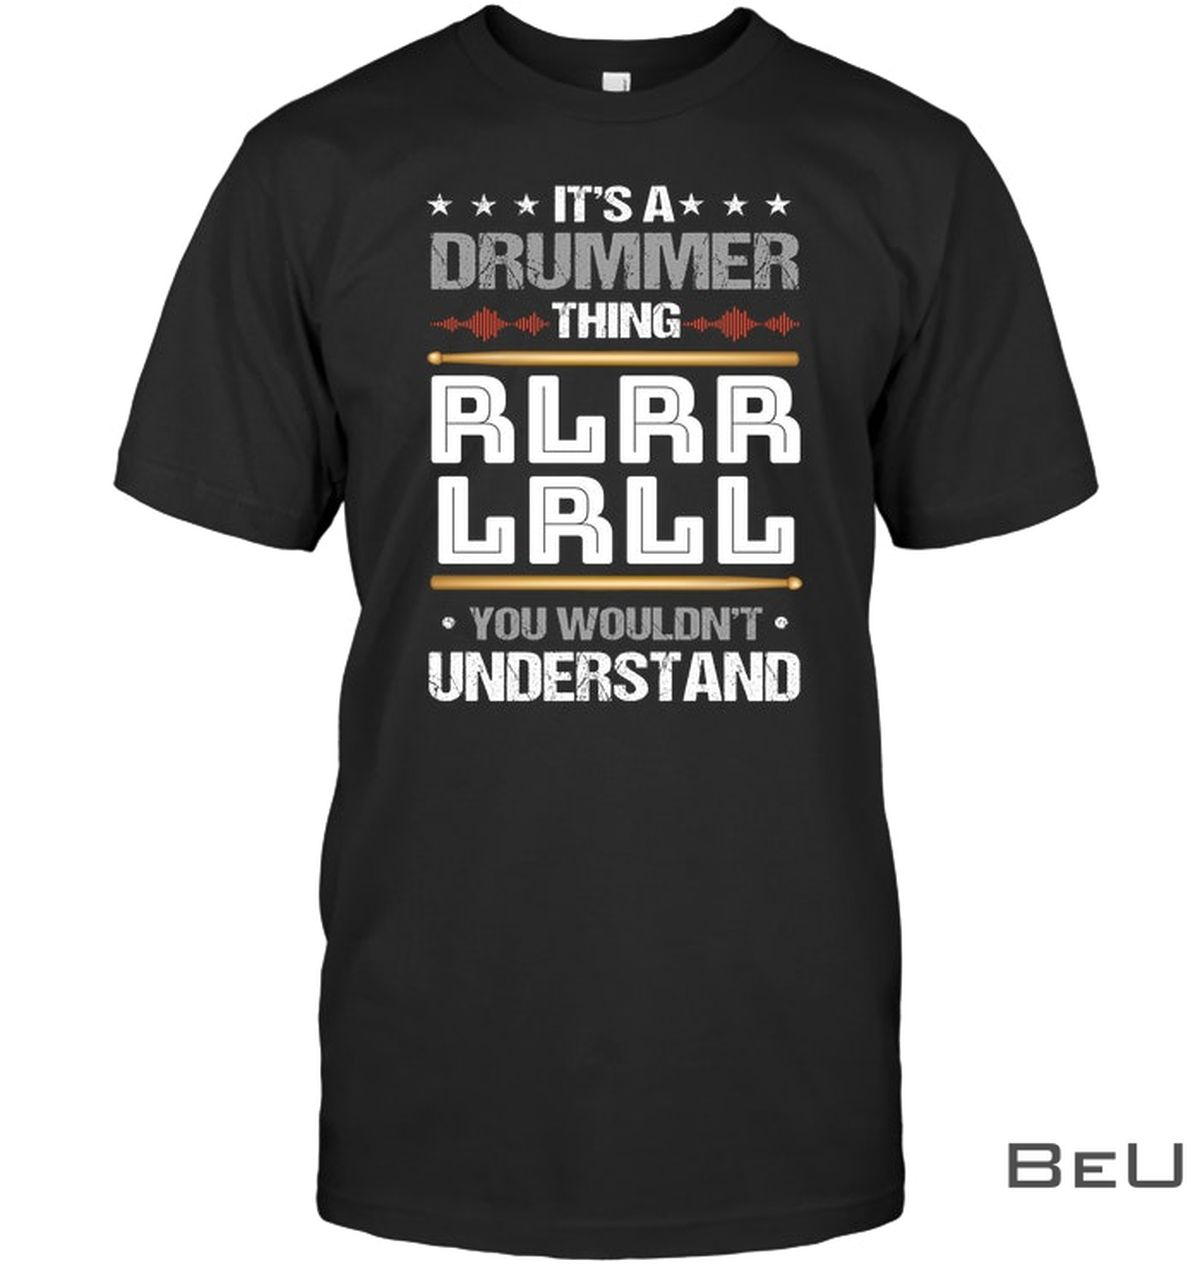 It's A Drummer Thing RLRR LRLL You Wouldn't Understand Shirt